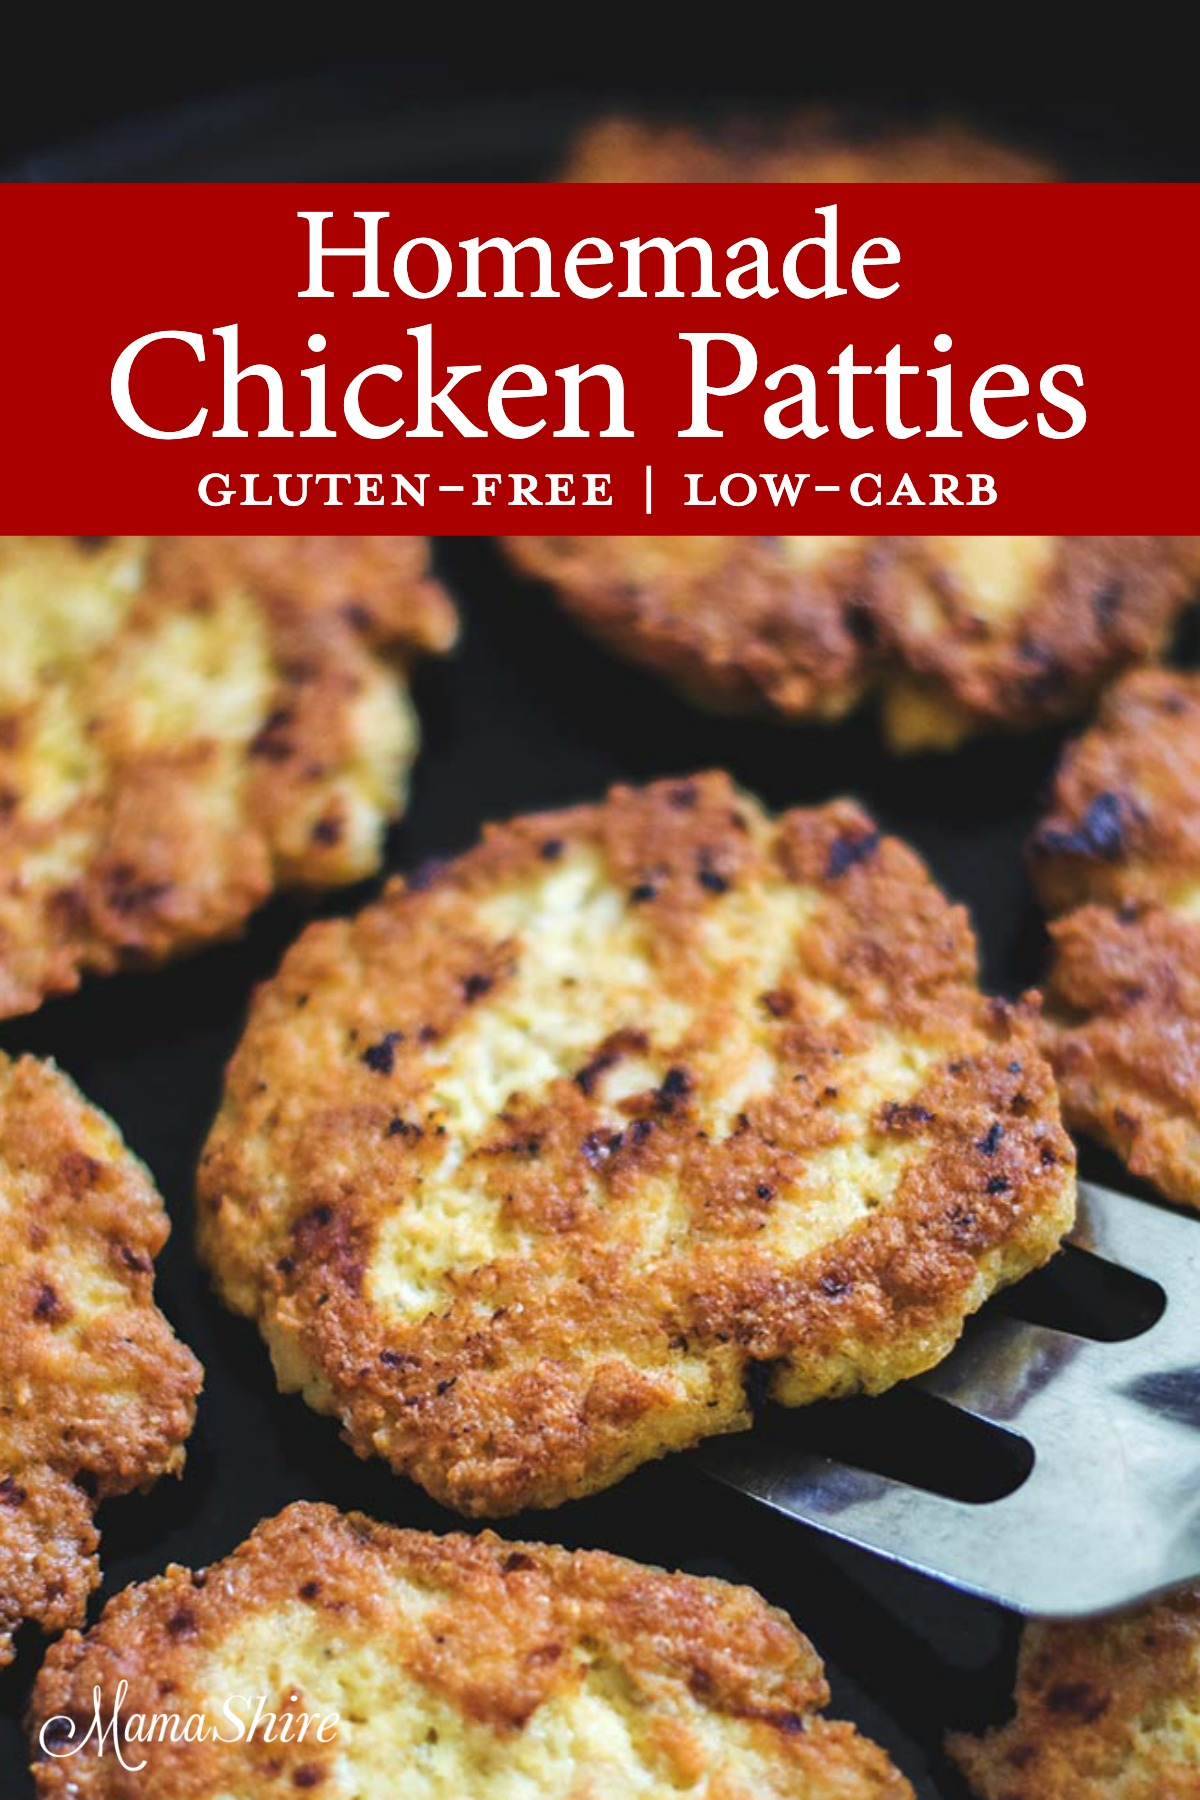 Chicken patties fried in an iron skillet using a homemade chicken patties recipe.